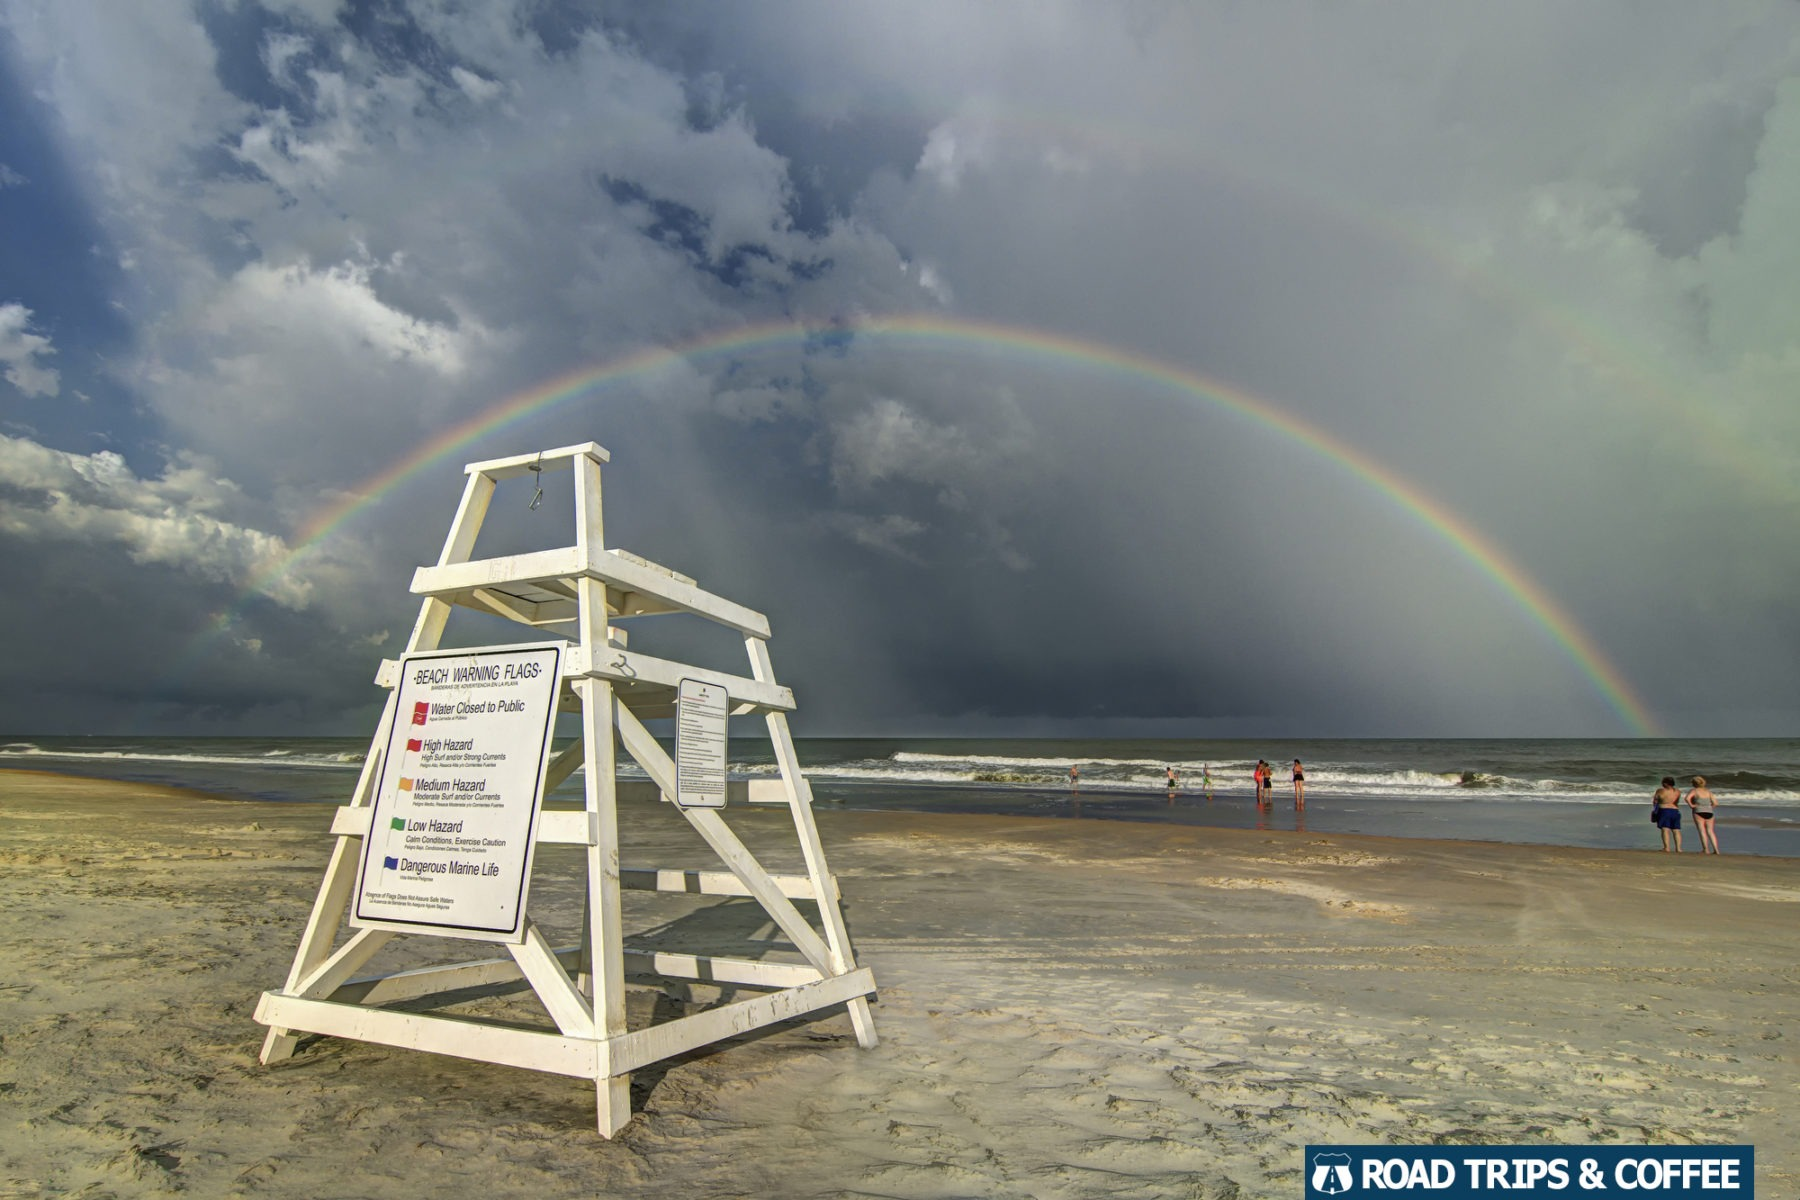 A rainbow stretches across the ocean in front of a dark thunderstorm with a bright white lifeguard chair beneath at Huntington Beach State Park in Murrells Inlet, South Carolina